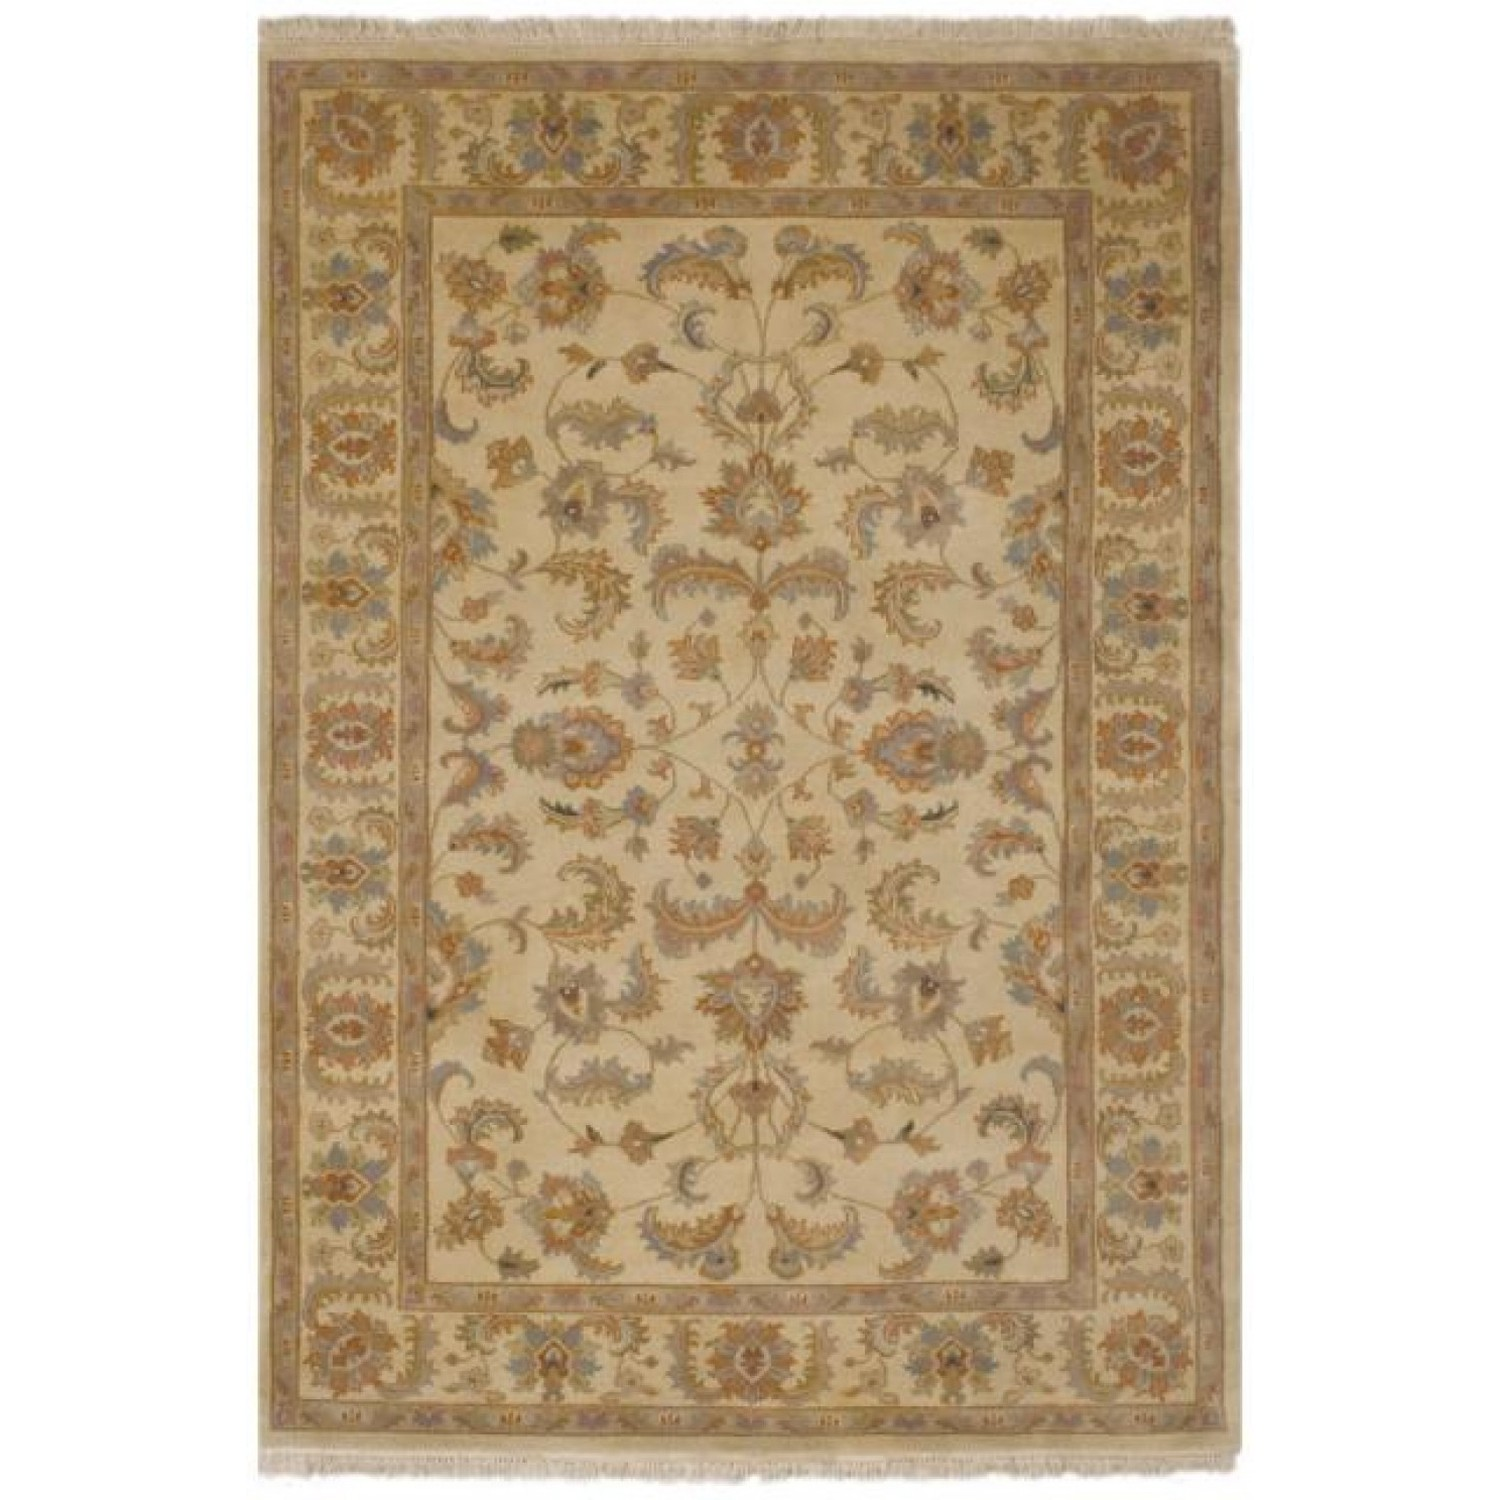 Frith Rugs Ipz075 Knotted Indo Persian Shervan Design Rug 1